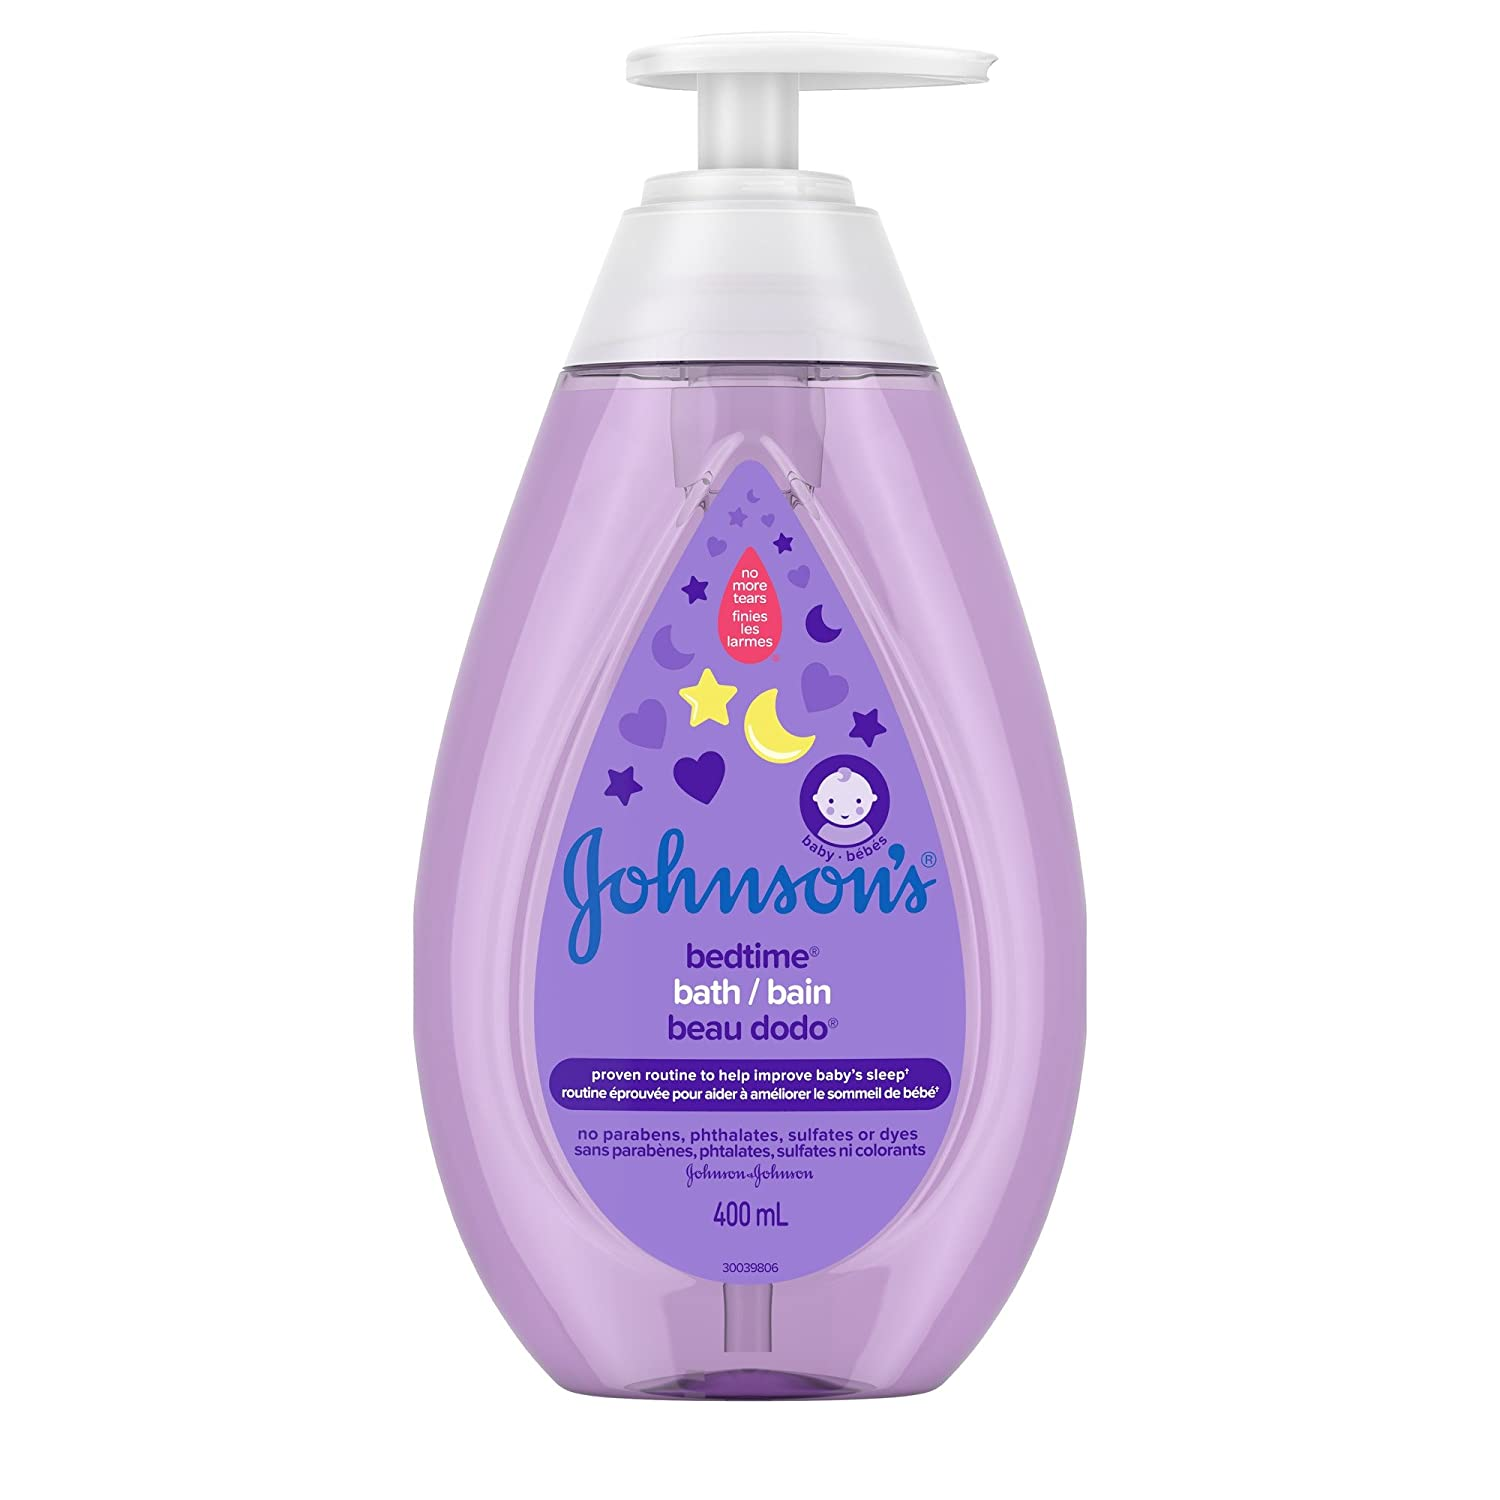 Johnson's Baby bedtime bath wash, baby wash and cleanser, 400ml Johnson and Johnson